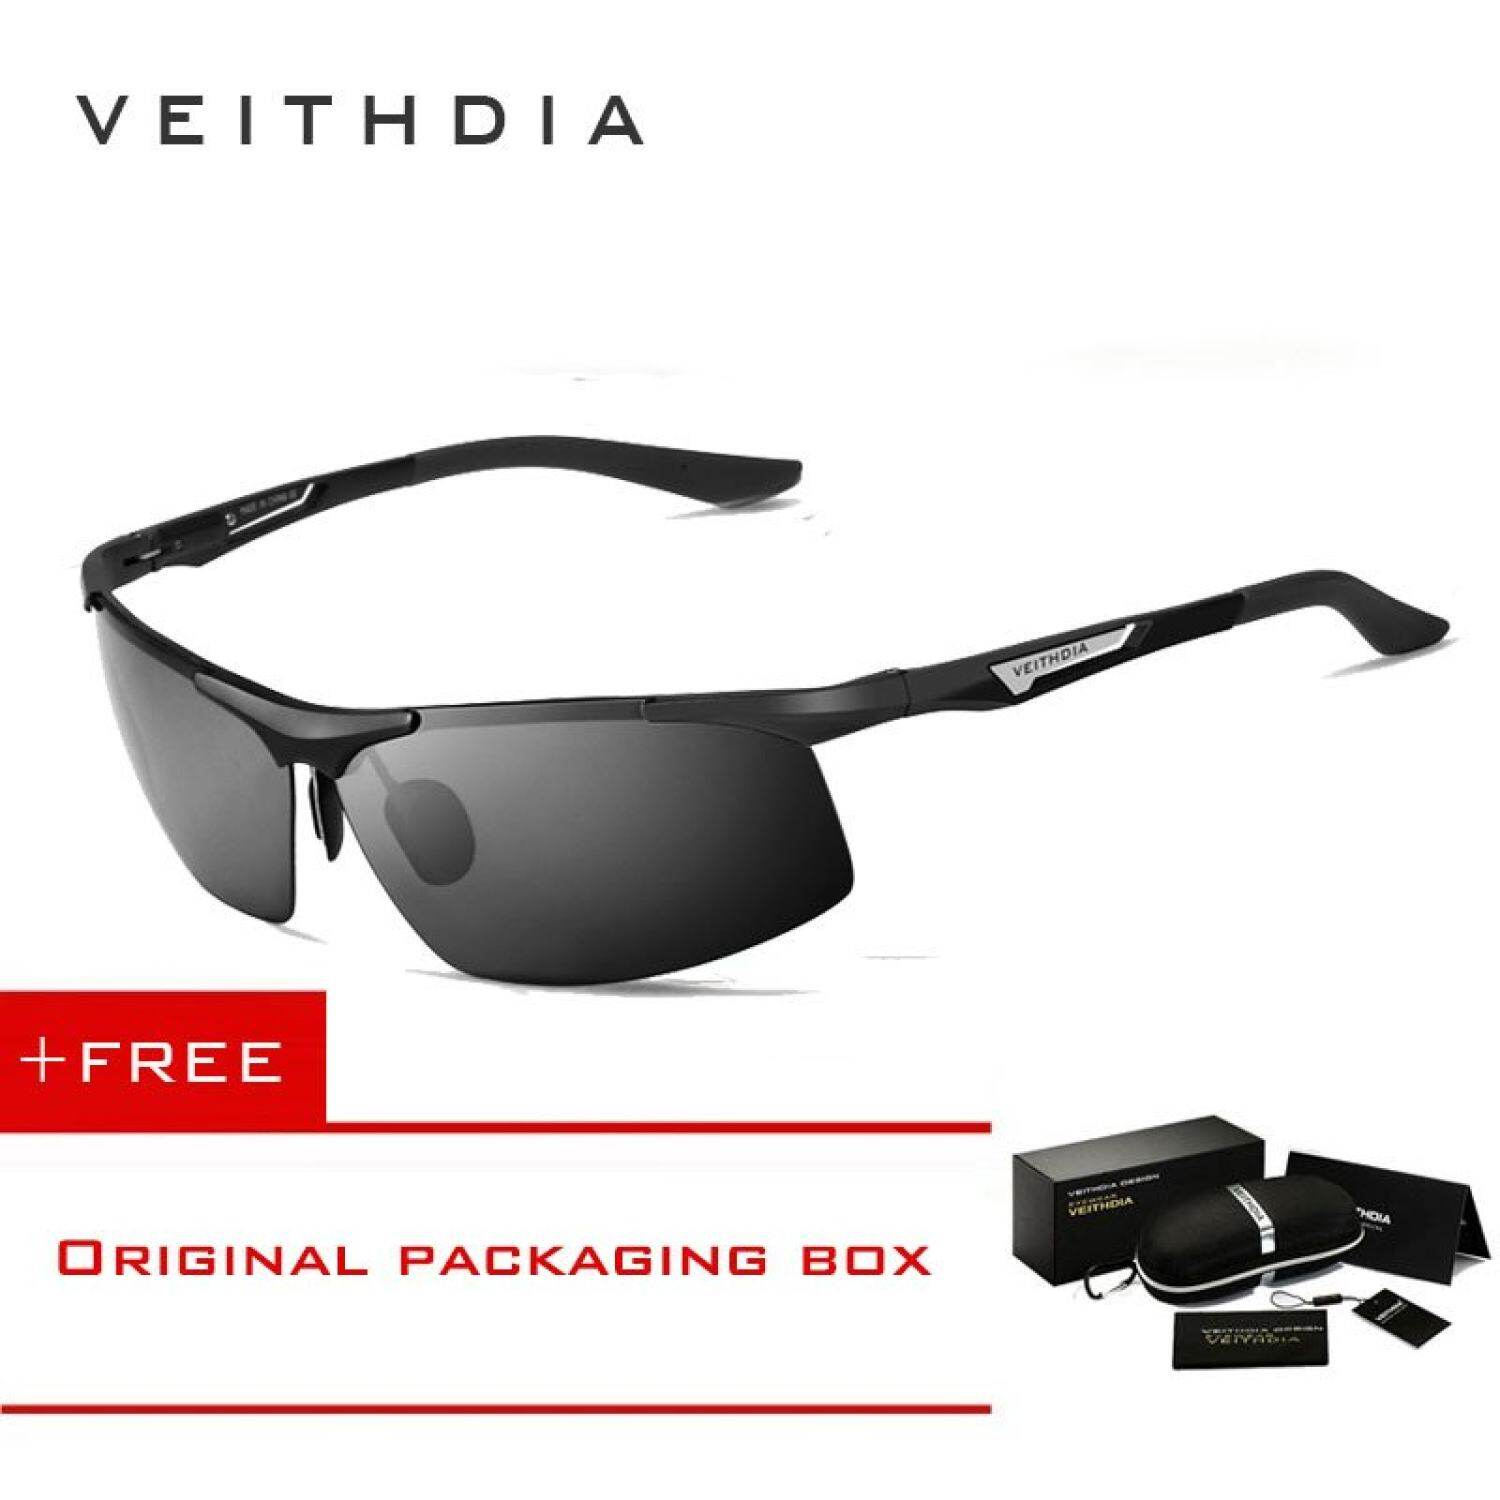 019da04c5f VEITHDIA Aluminum Magnesium Men s Sunglasses Polarized Men Coating Mirror Glasses  Eyewear Accessories For Men 6562 -